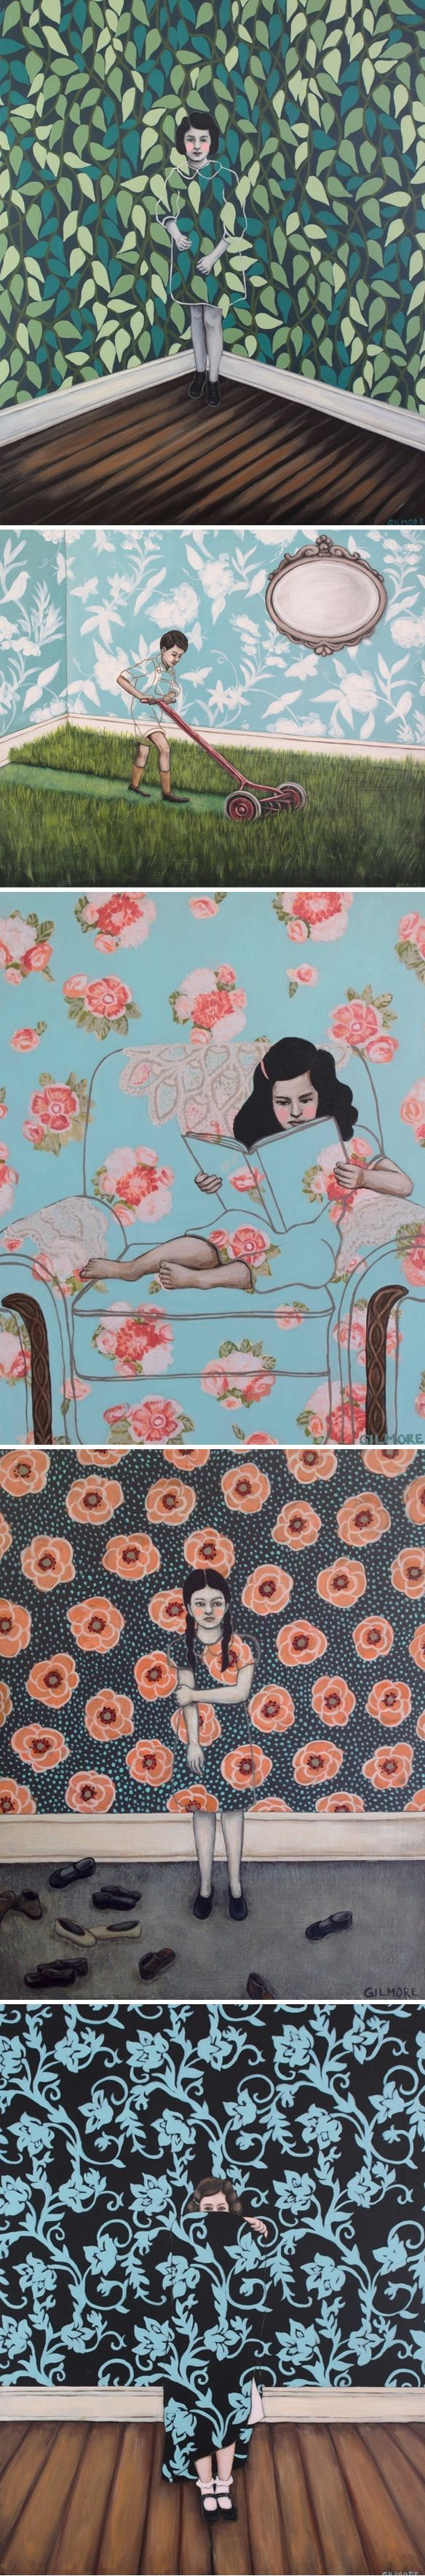 paintings by shawna gilmore